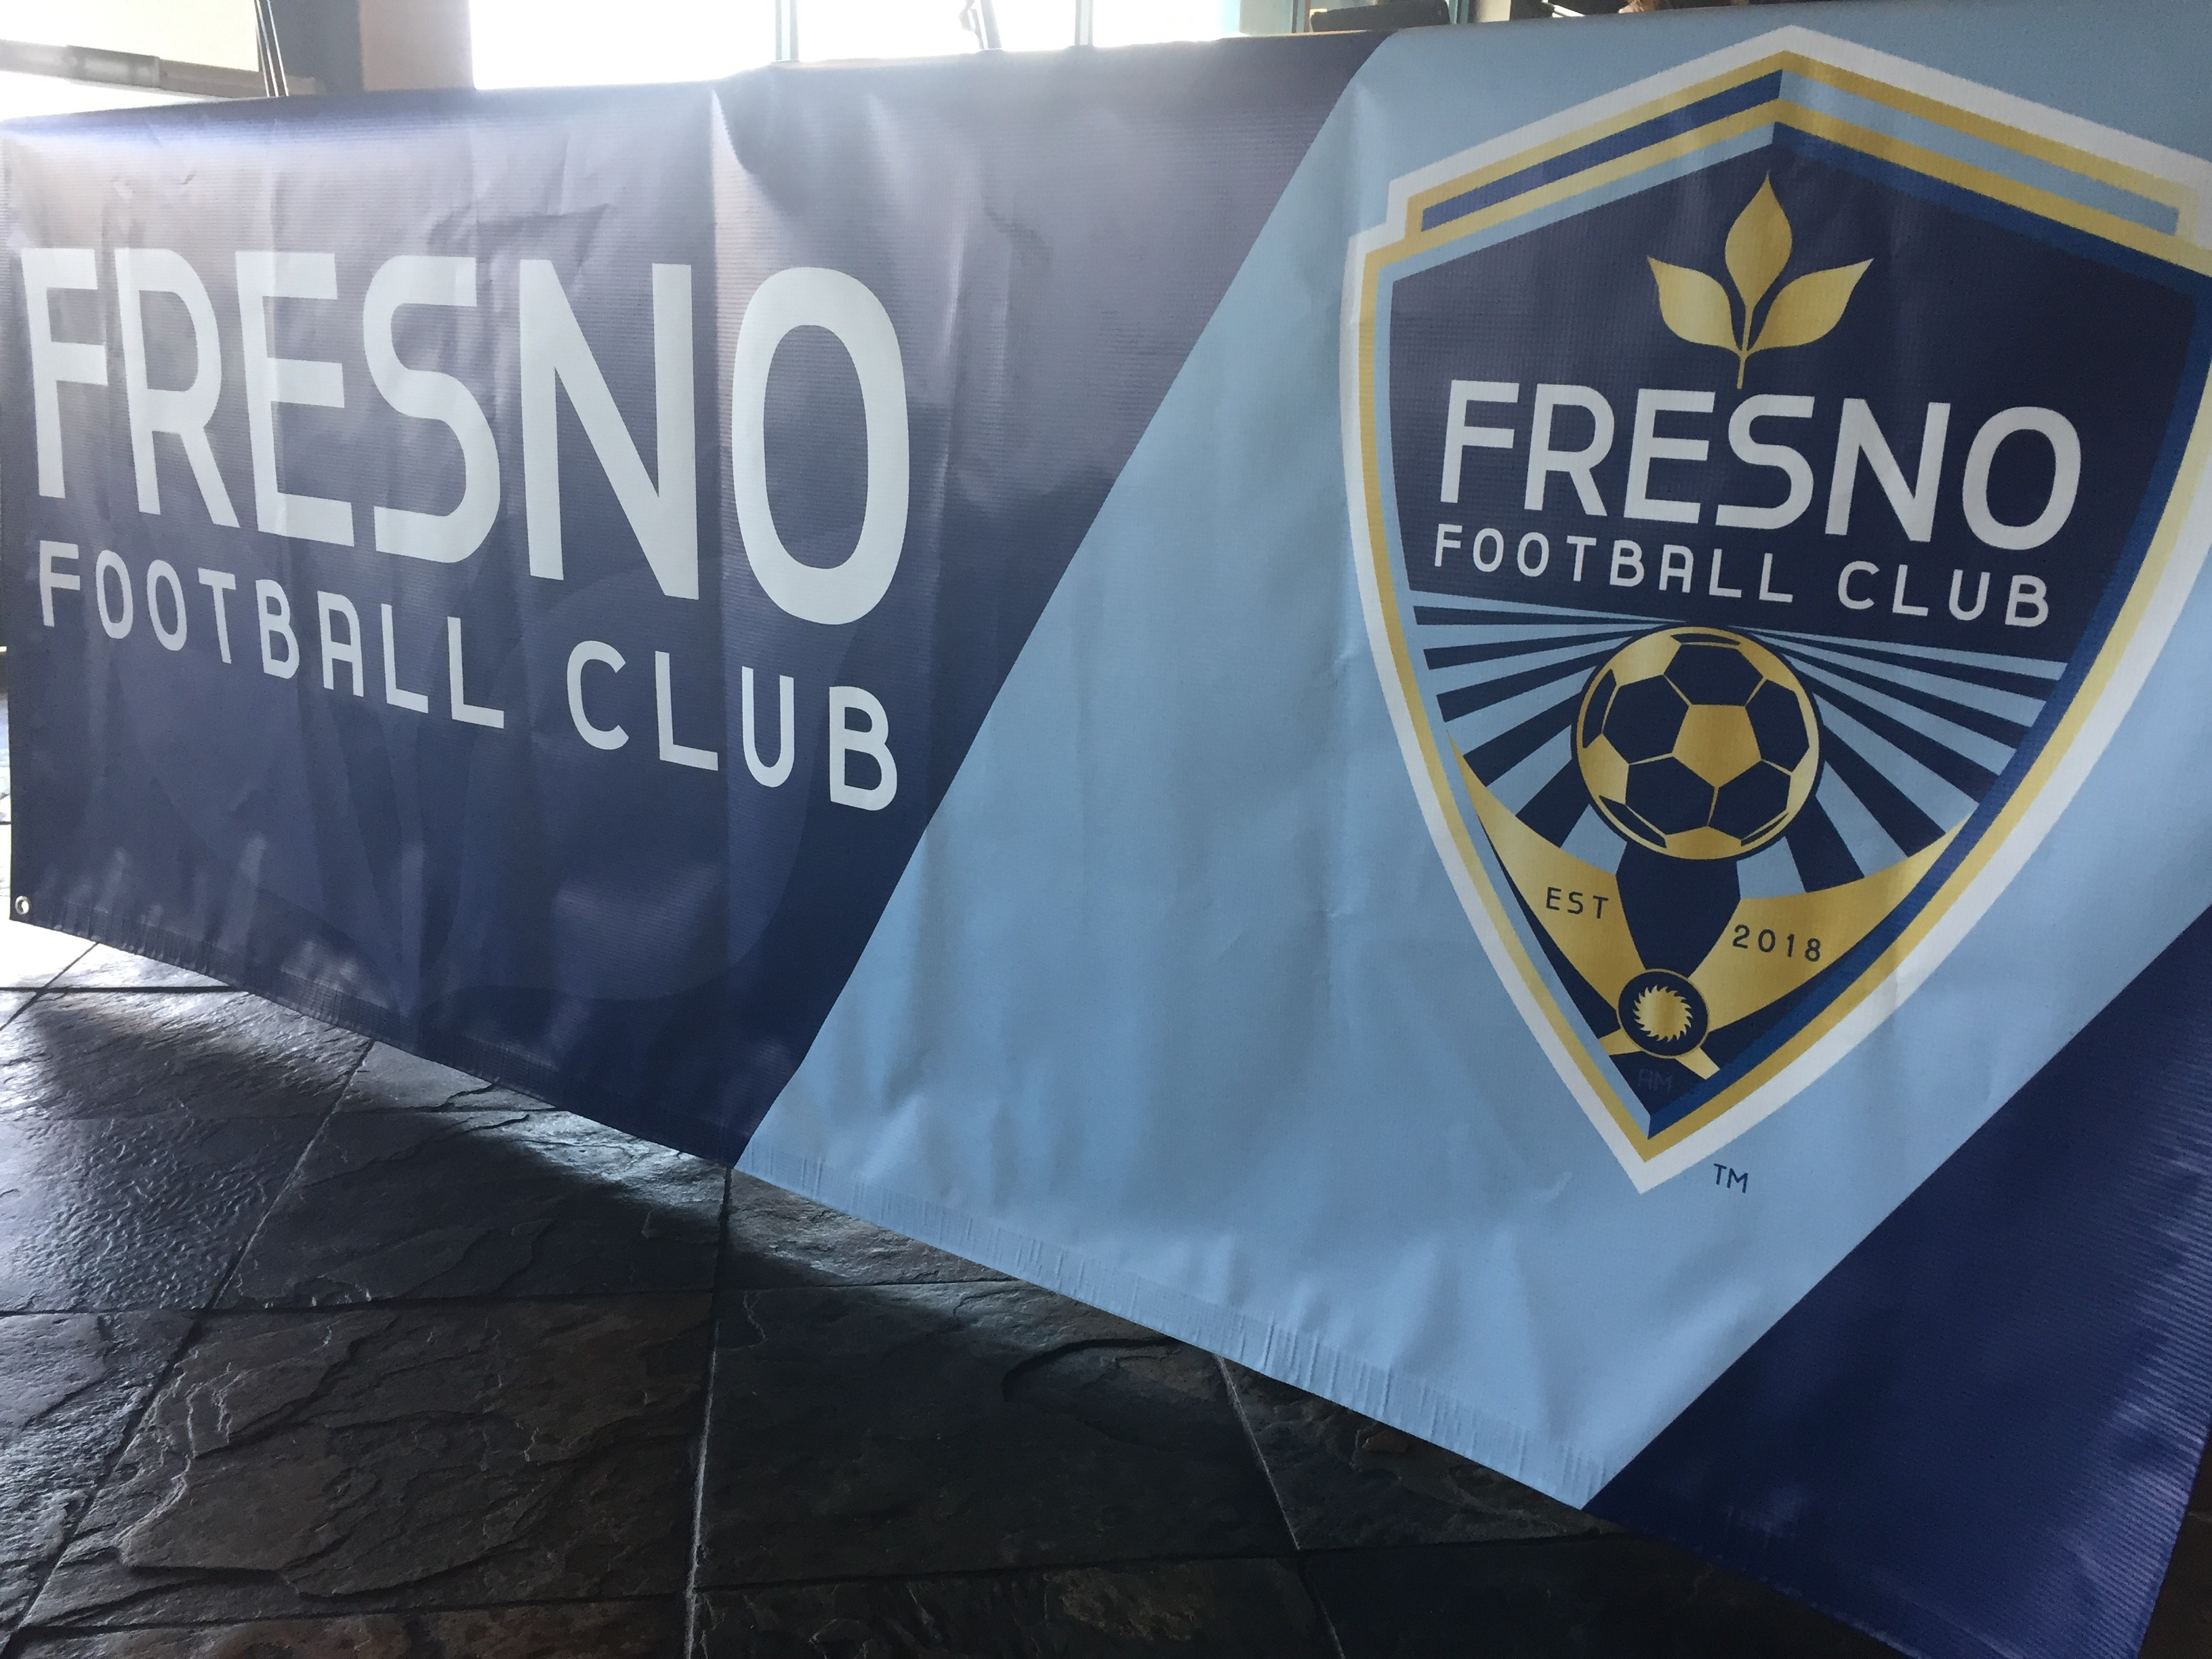 Fresno Football Club logo unveiled at the news conference